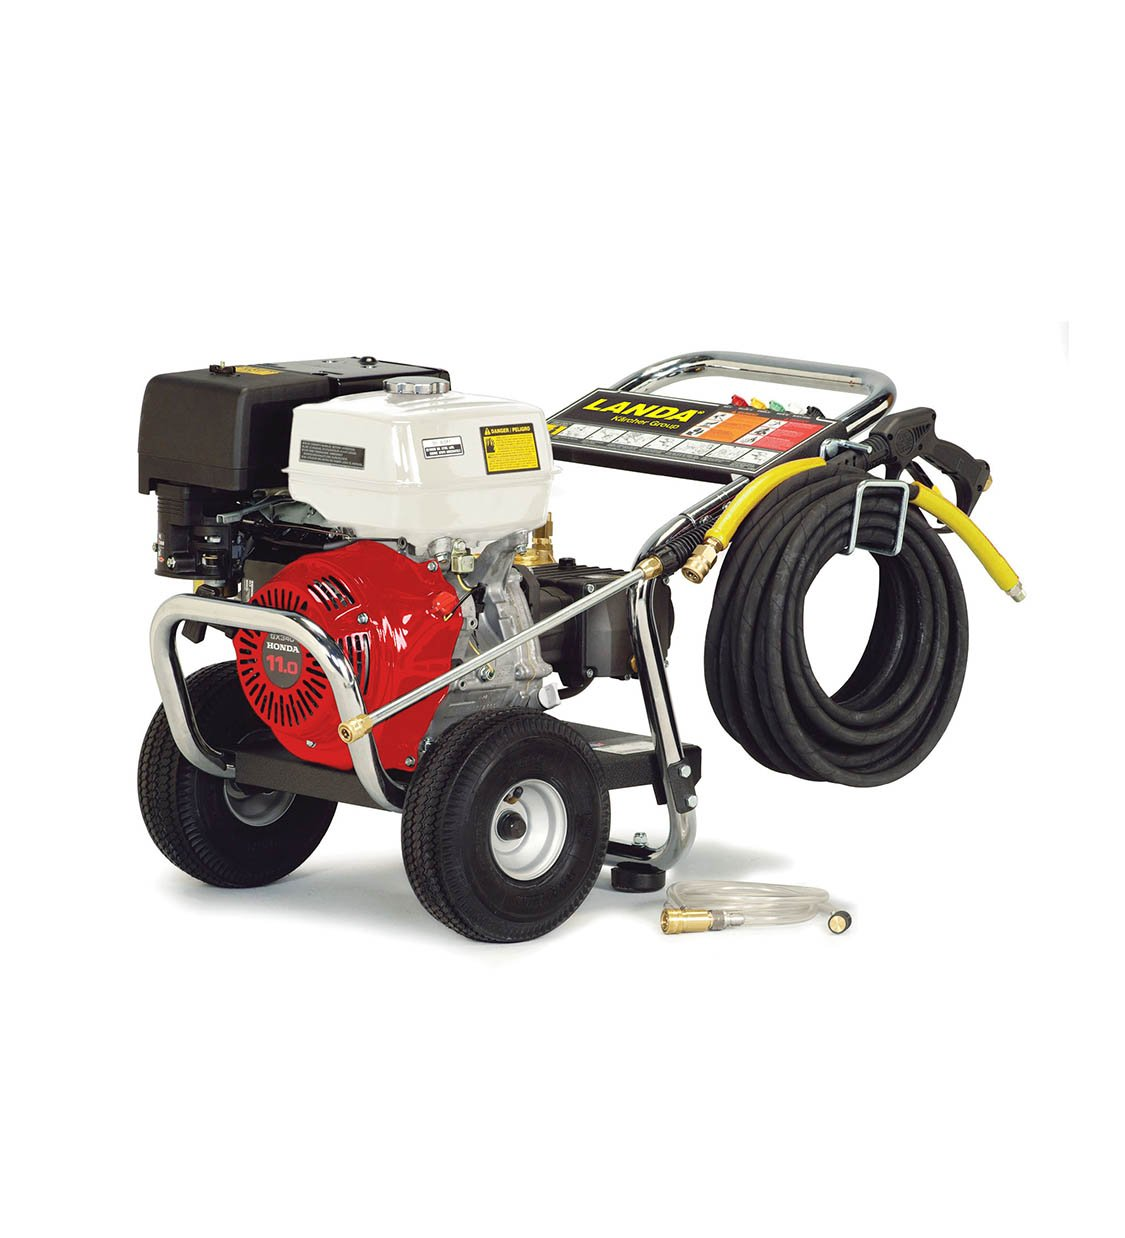 Landa Pressure Washer Wiring Diagram Wiring Library